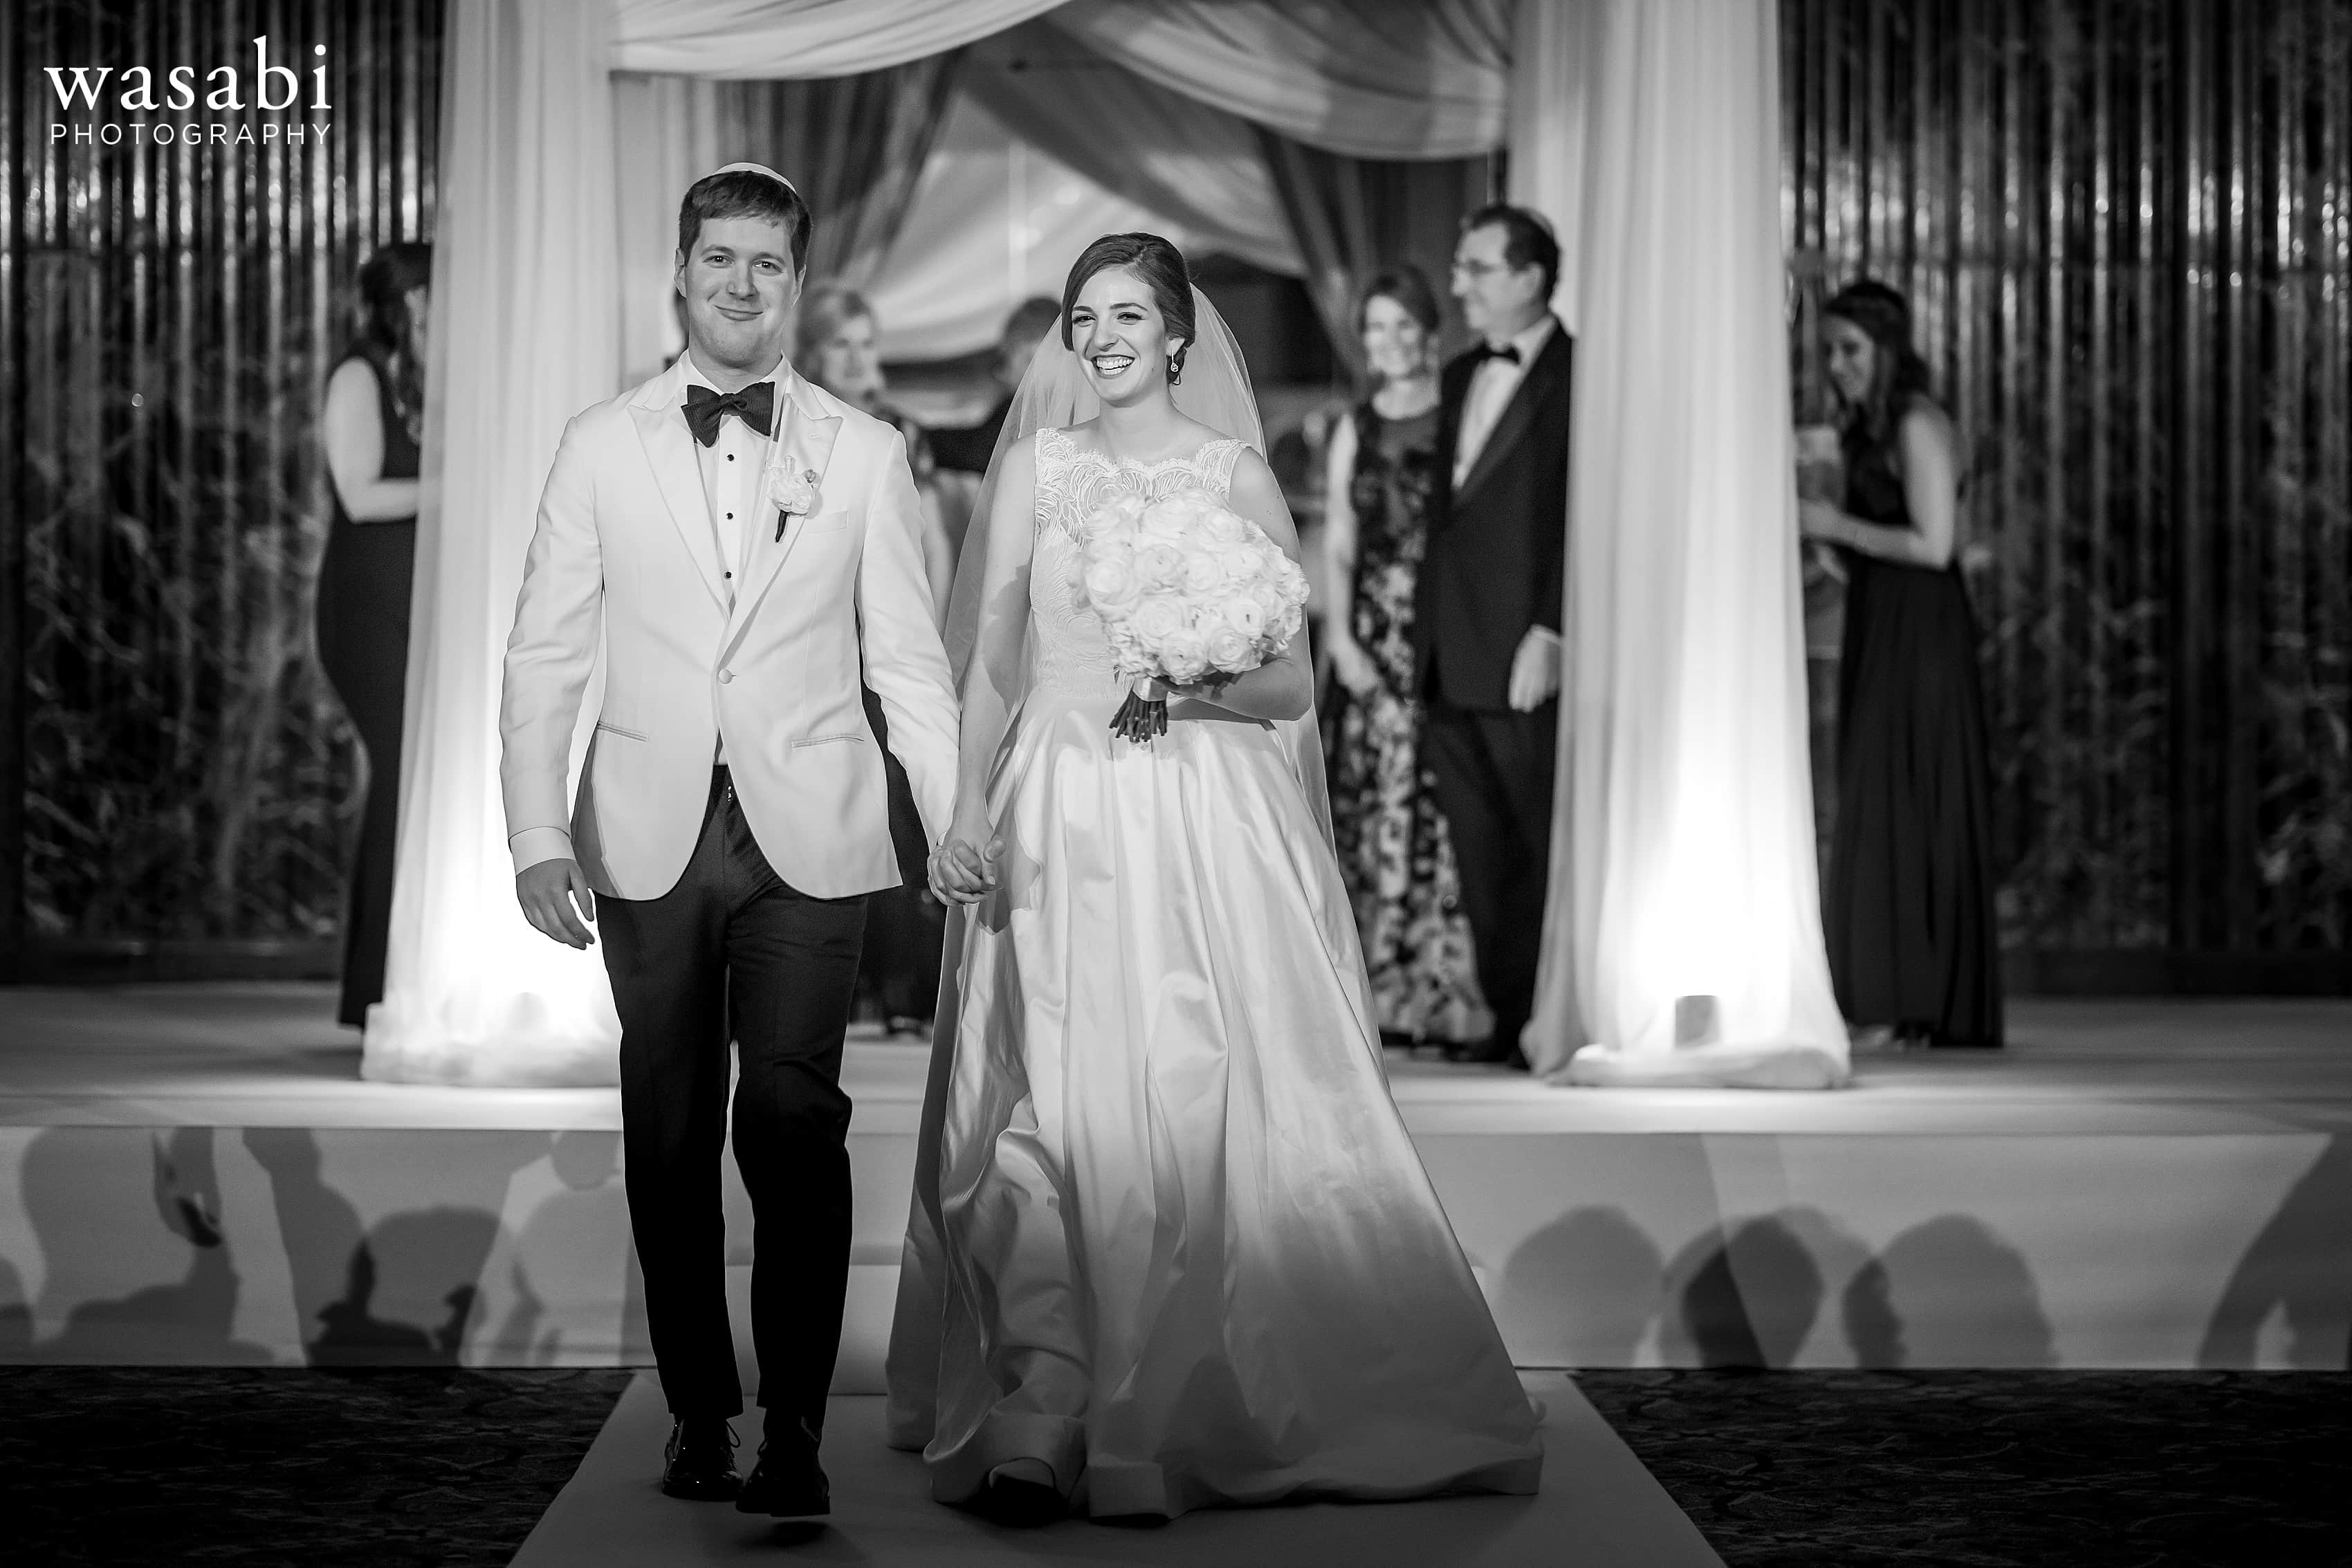 bride and groom walk back down the aisle together at the end of Jewish wedding ceremony at InterContinental Chicago Magnificent Mile Hotel